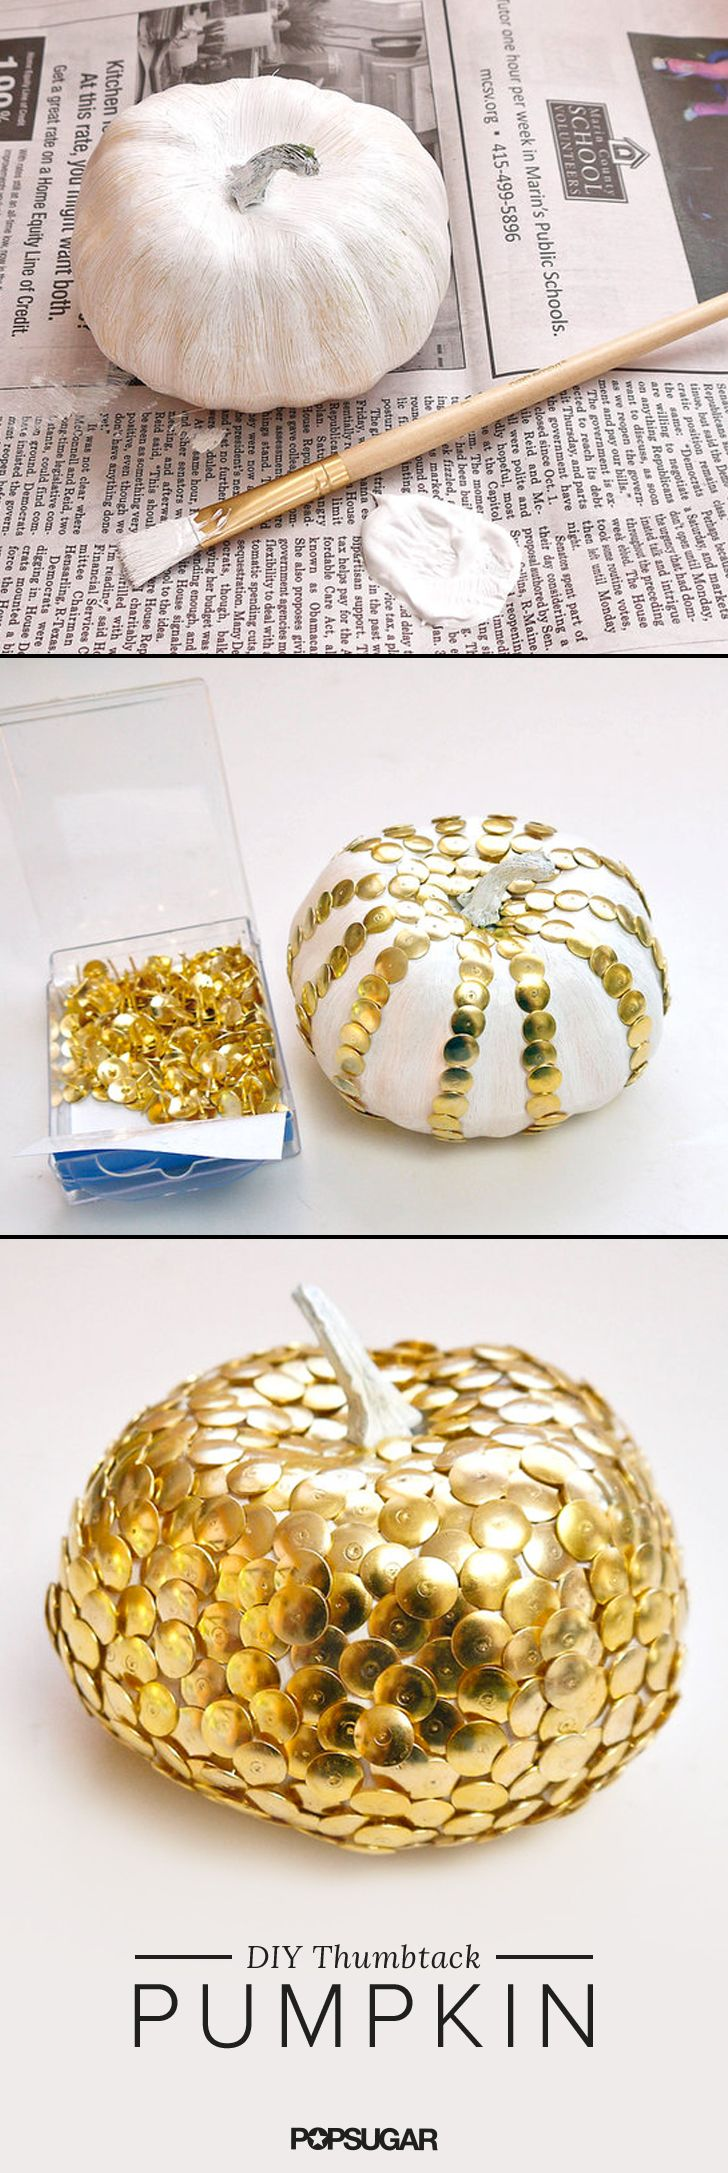 Not excited about carving pumpkins? Show your Halloween spirit with the help of a plastic pumpkin and a box of thumbtacks from the dollar store. Get creative with a design or keep it simple and cover the entire pumpkin for a cute seasonal decoration that lasts for years and years. Here's how to make one: